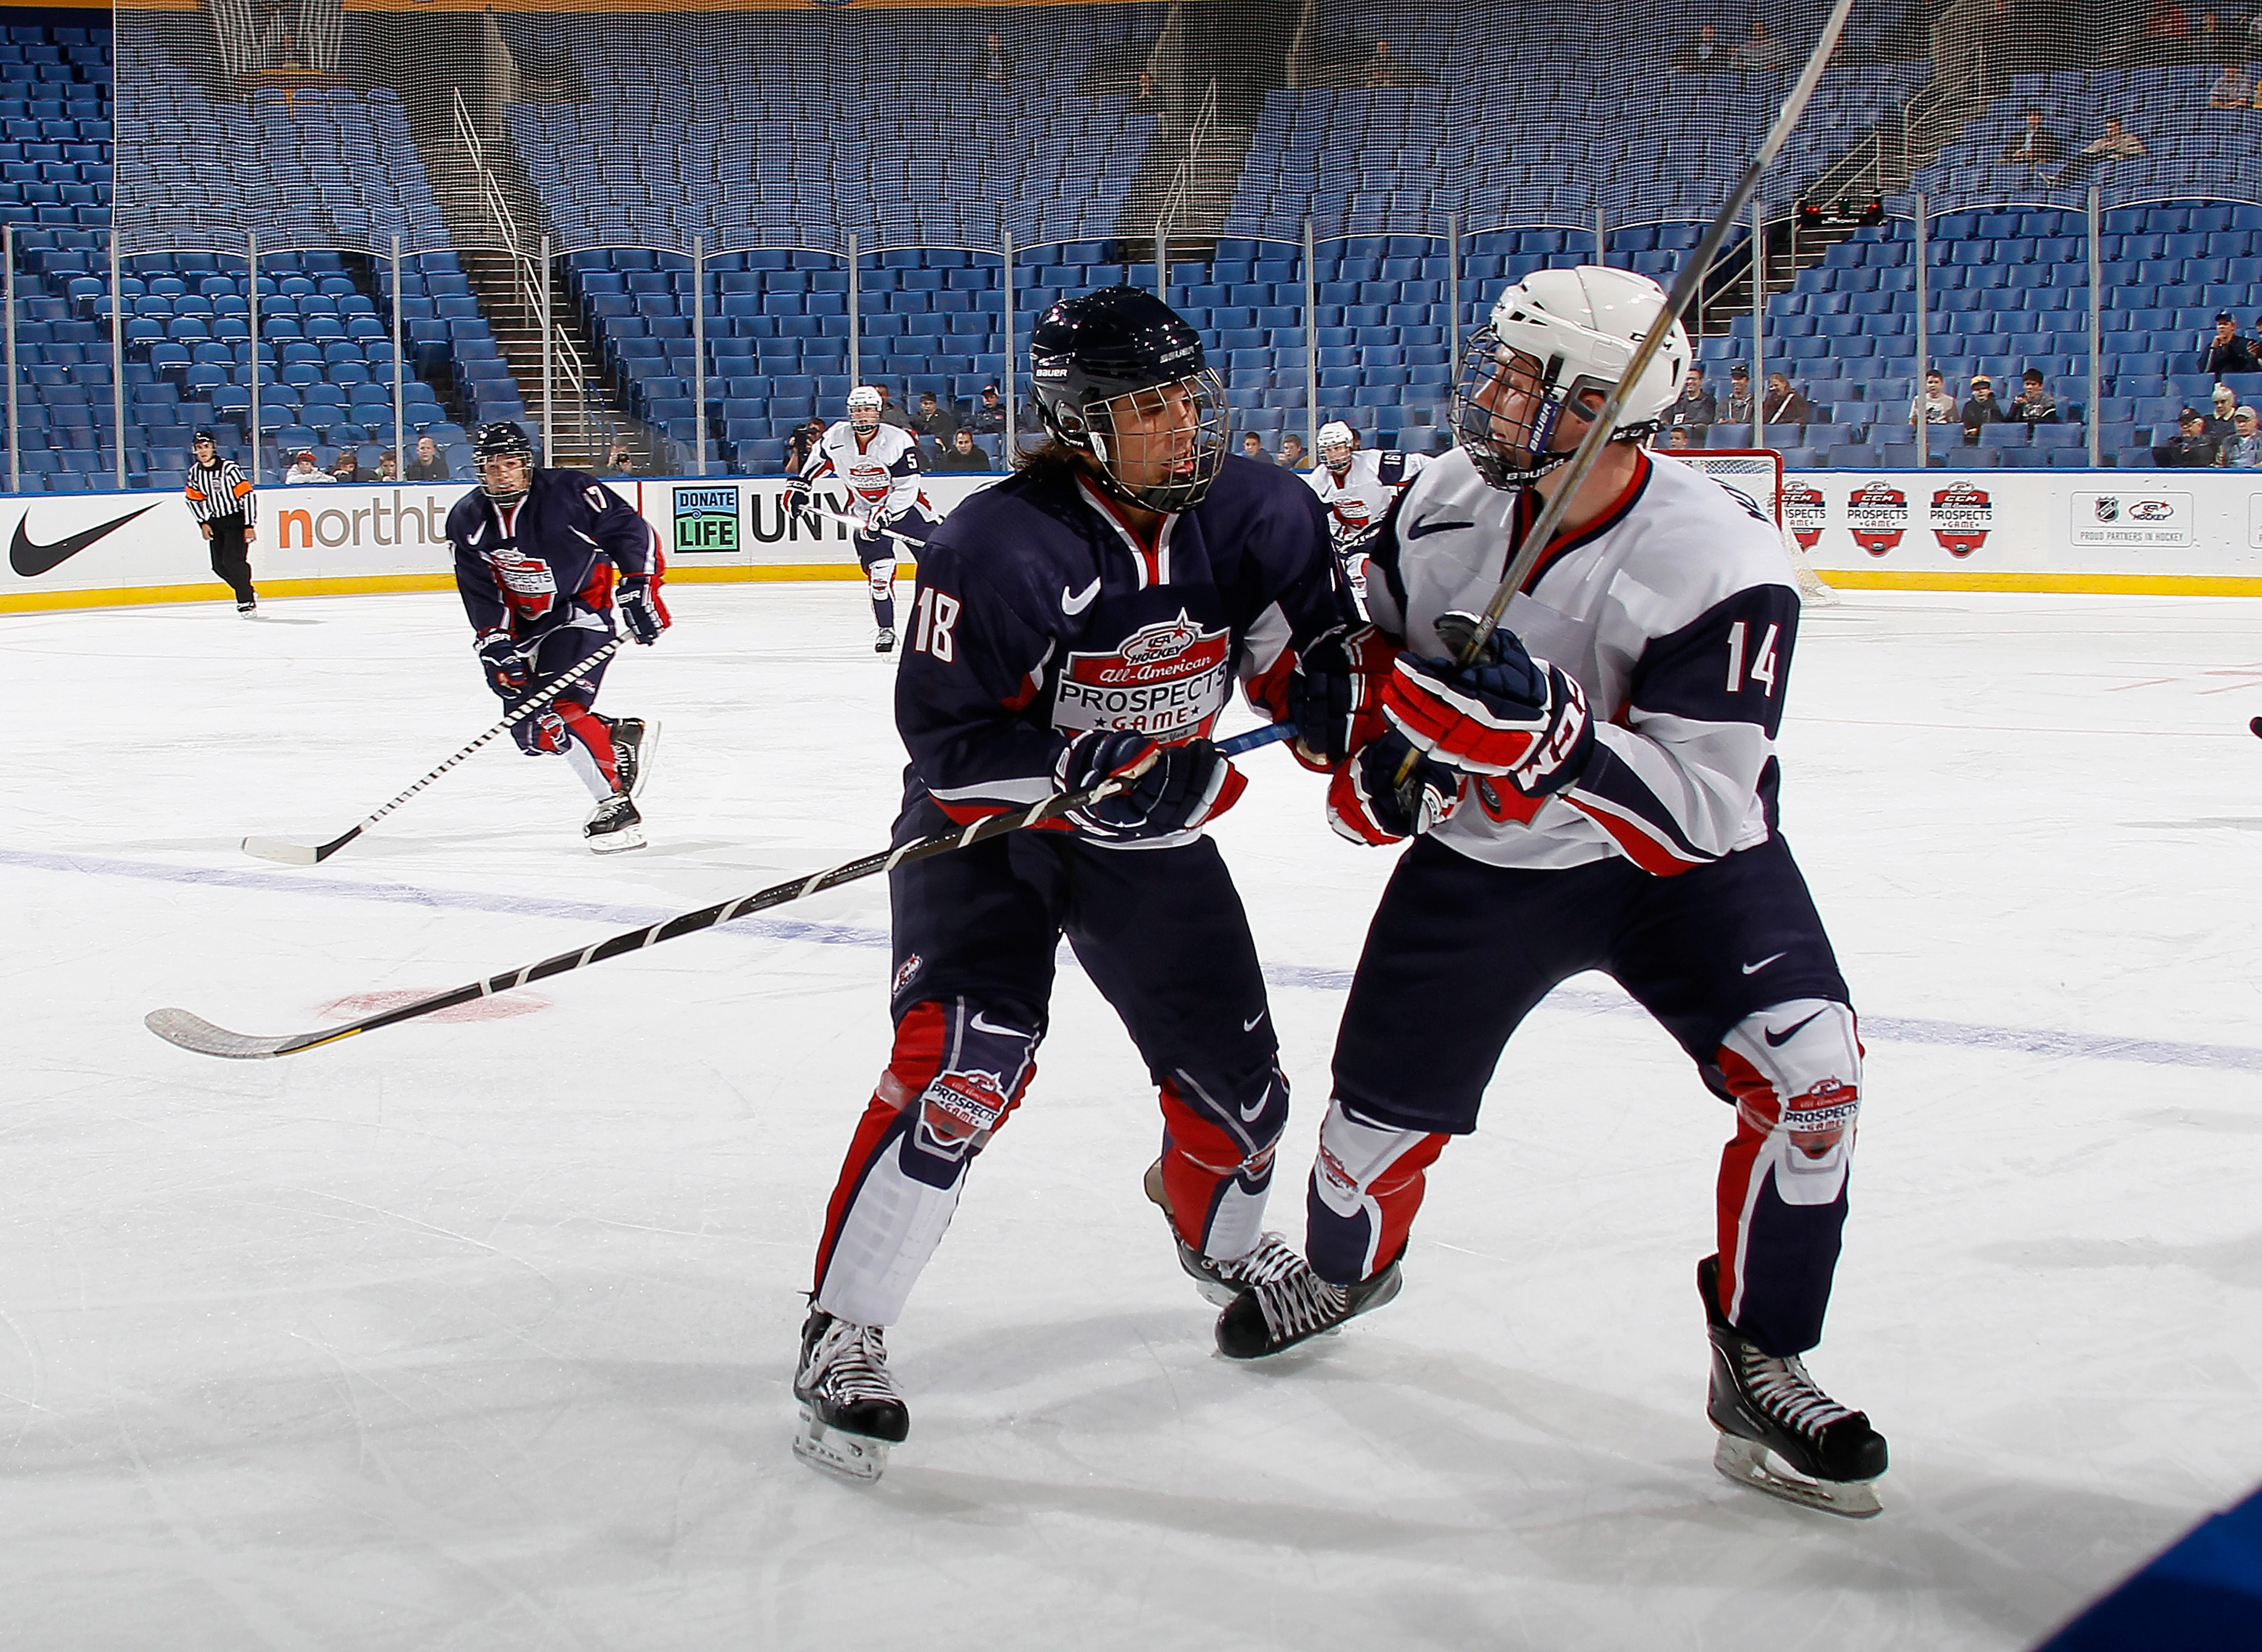 Ryan Hartman (left) took part in the USA Hockey All-American Prospects Game